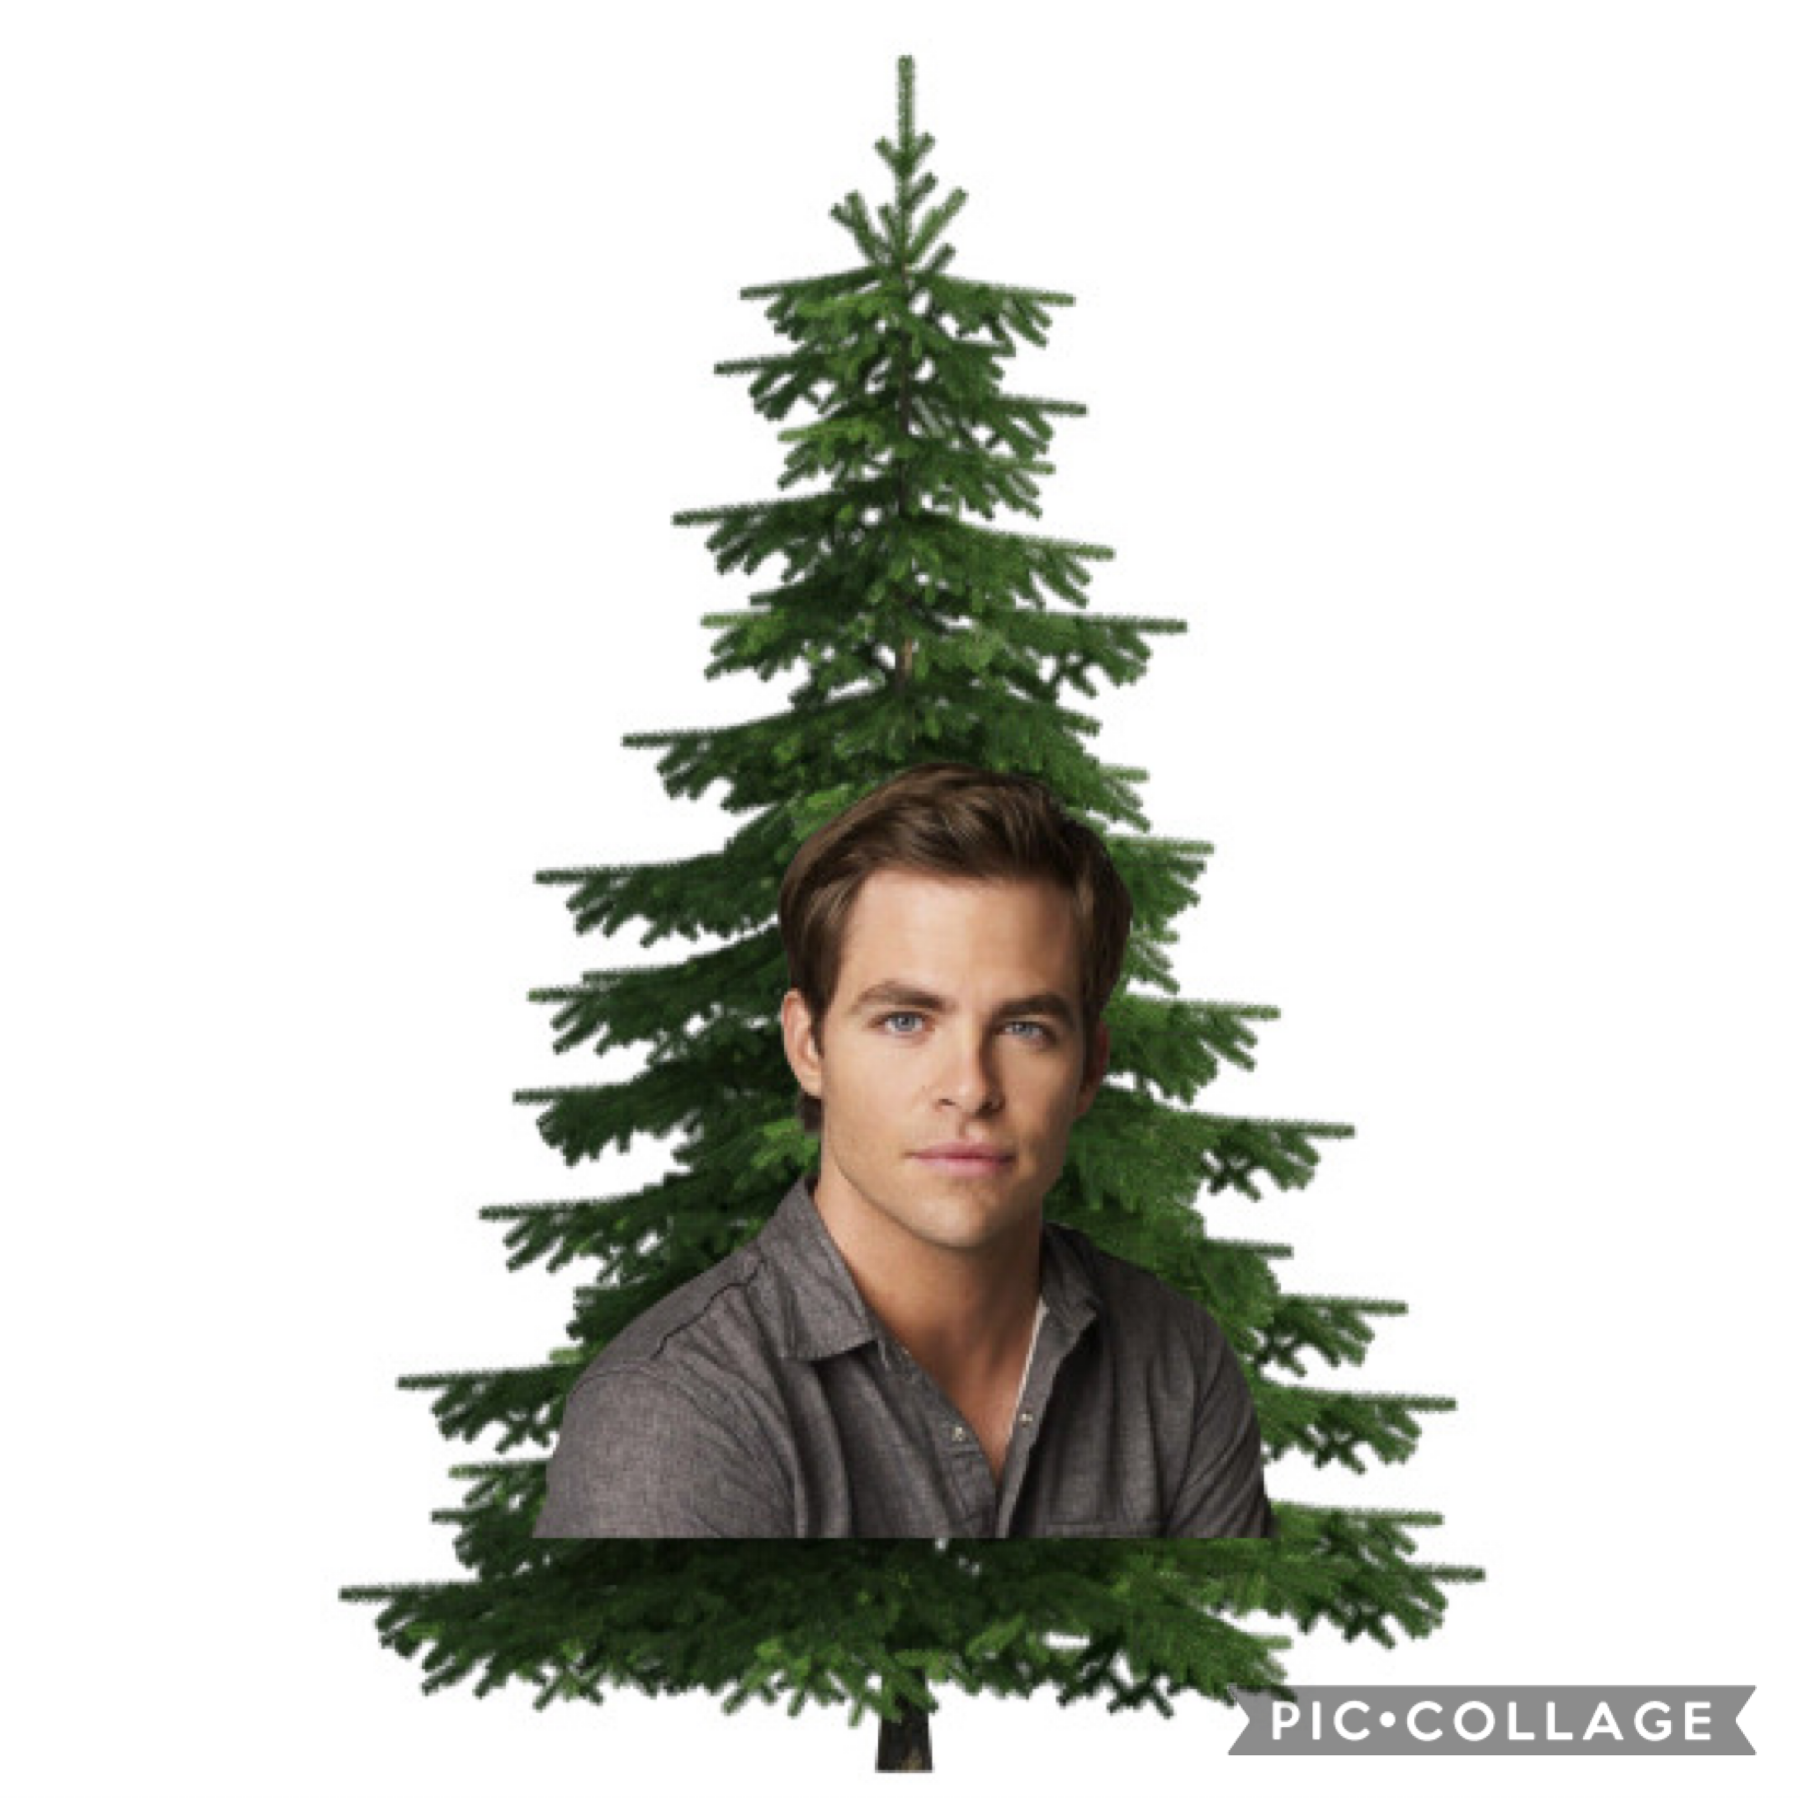 also merry late christmas;) it's a chris pine